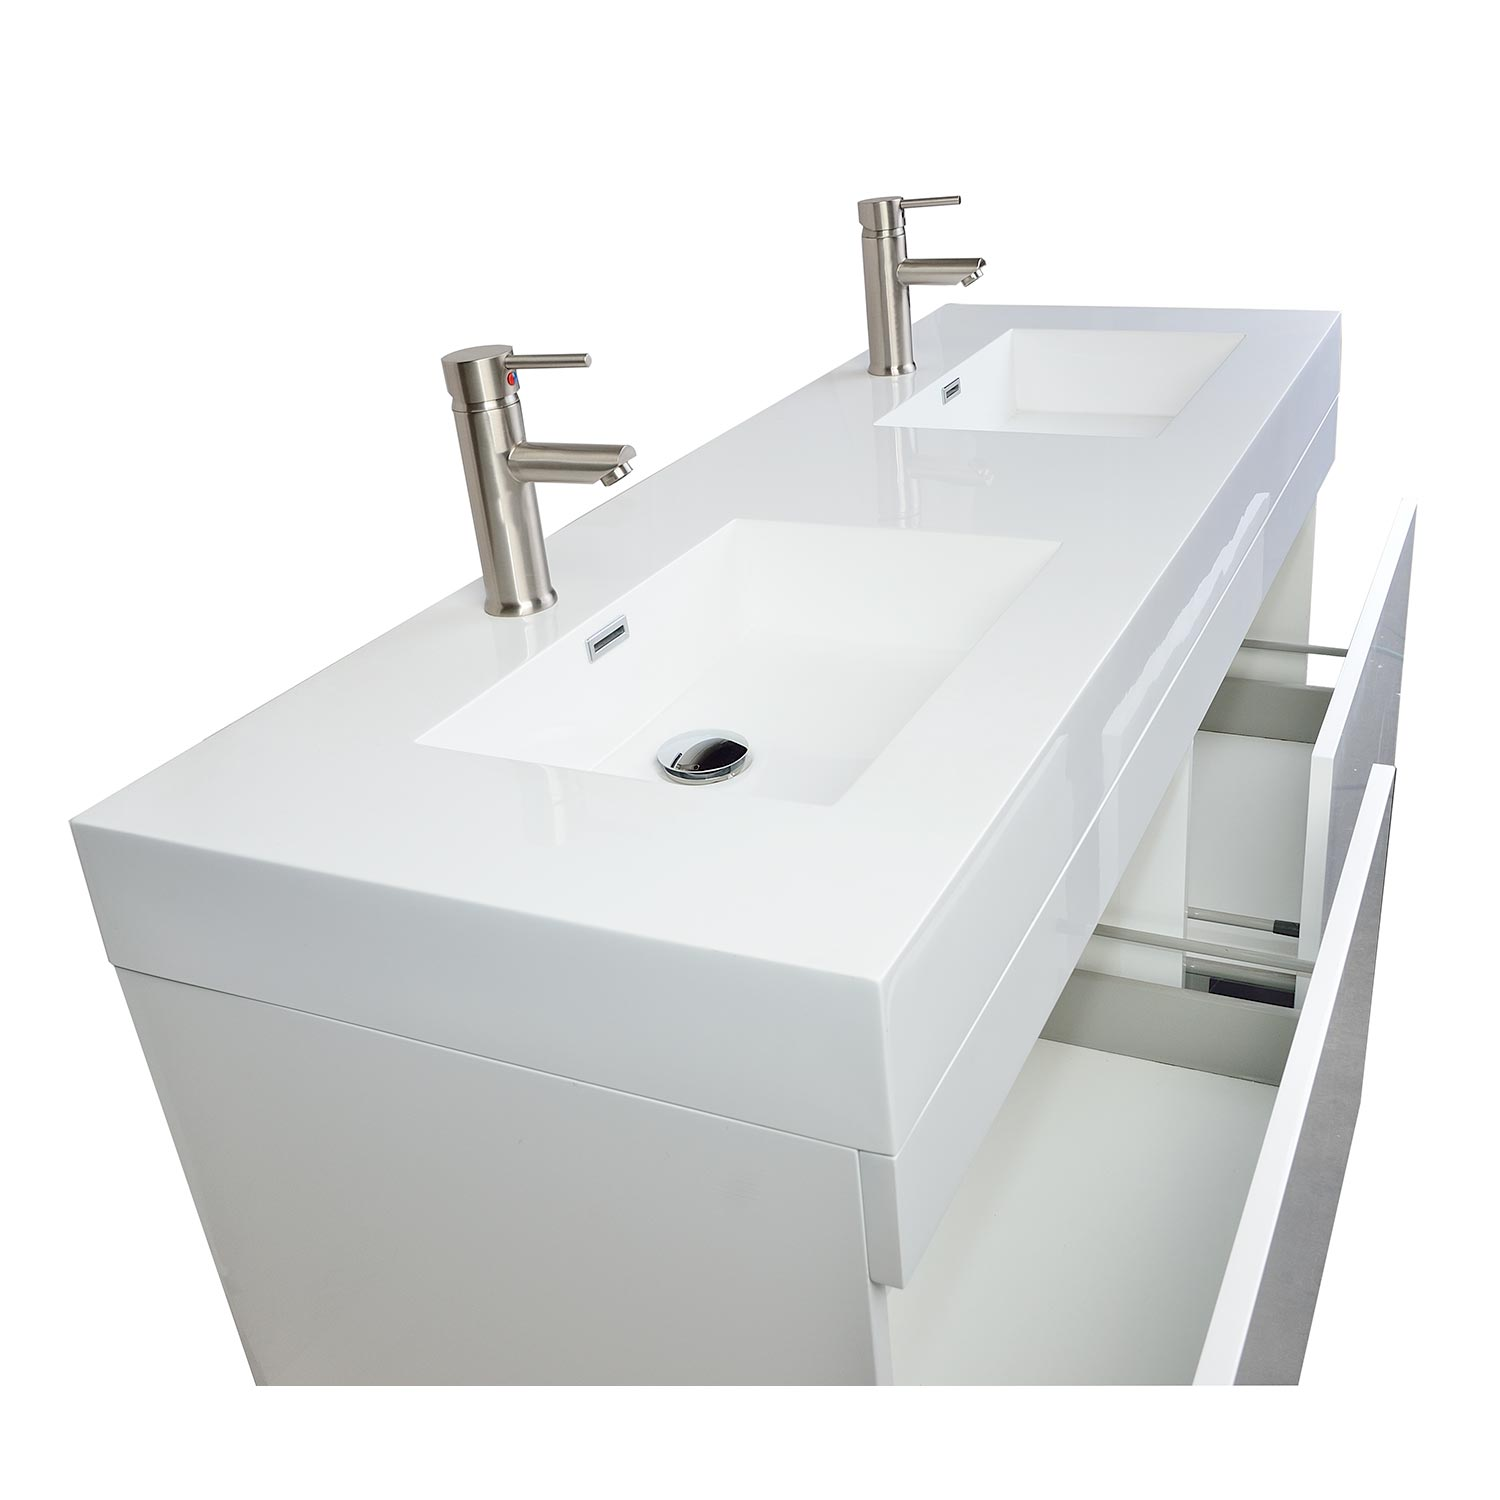 Buy 57 Inch Modern Double Sink Vanity Set In Glossy White Black Tn T1440 Hgw